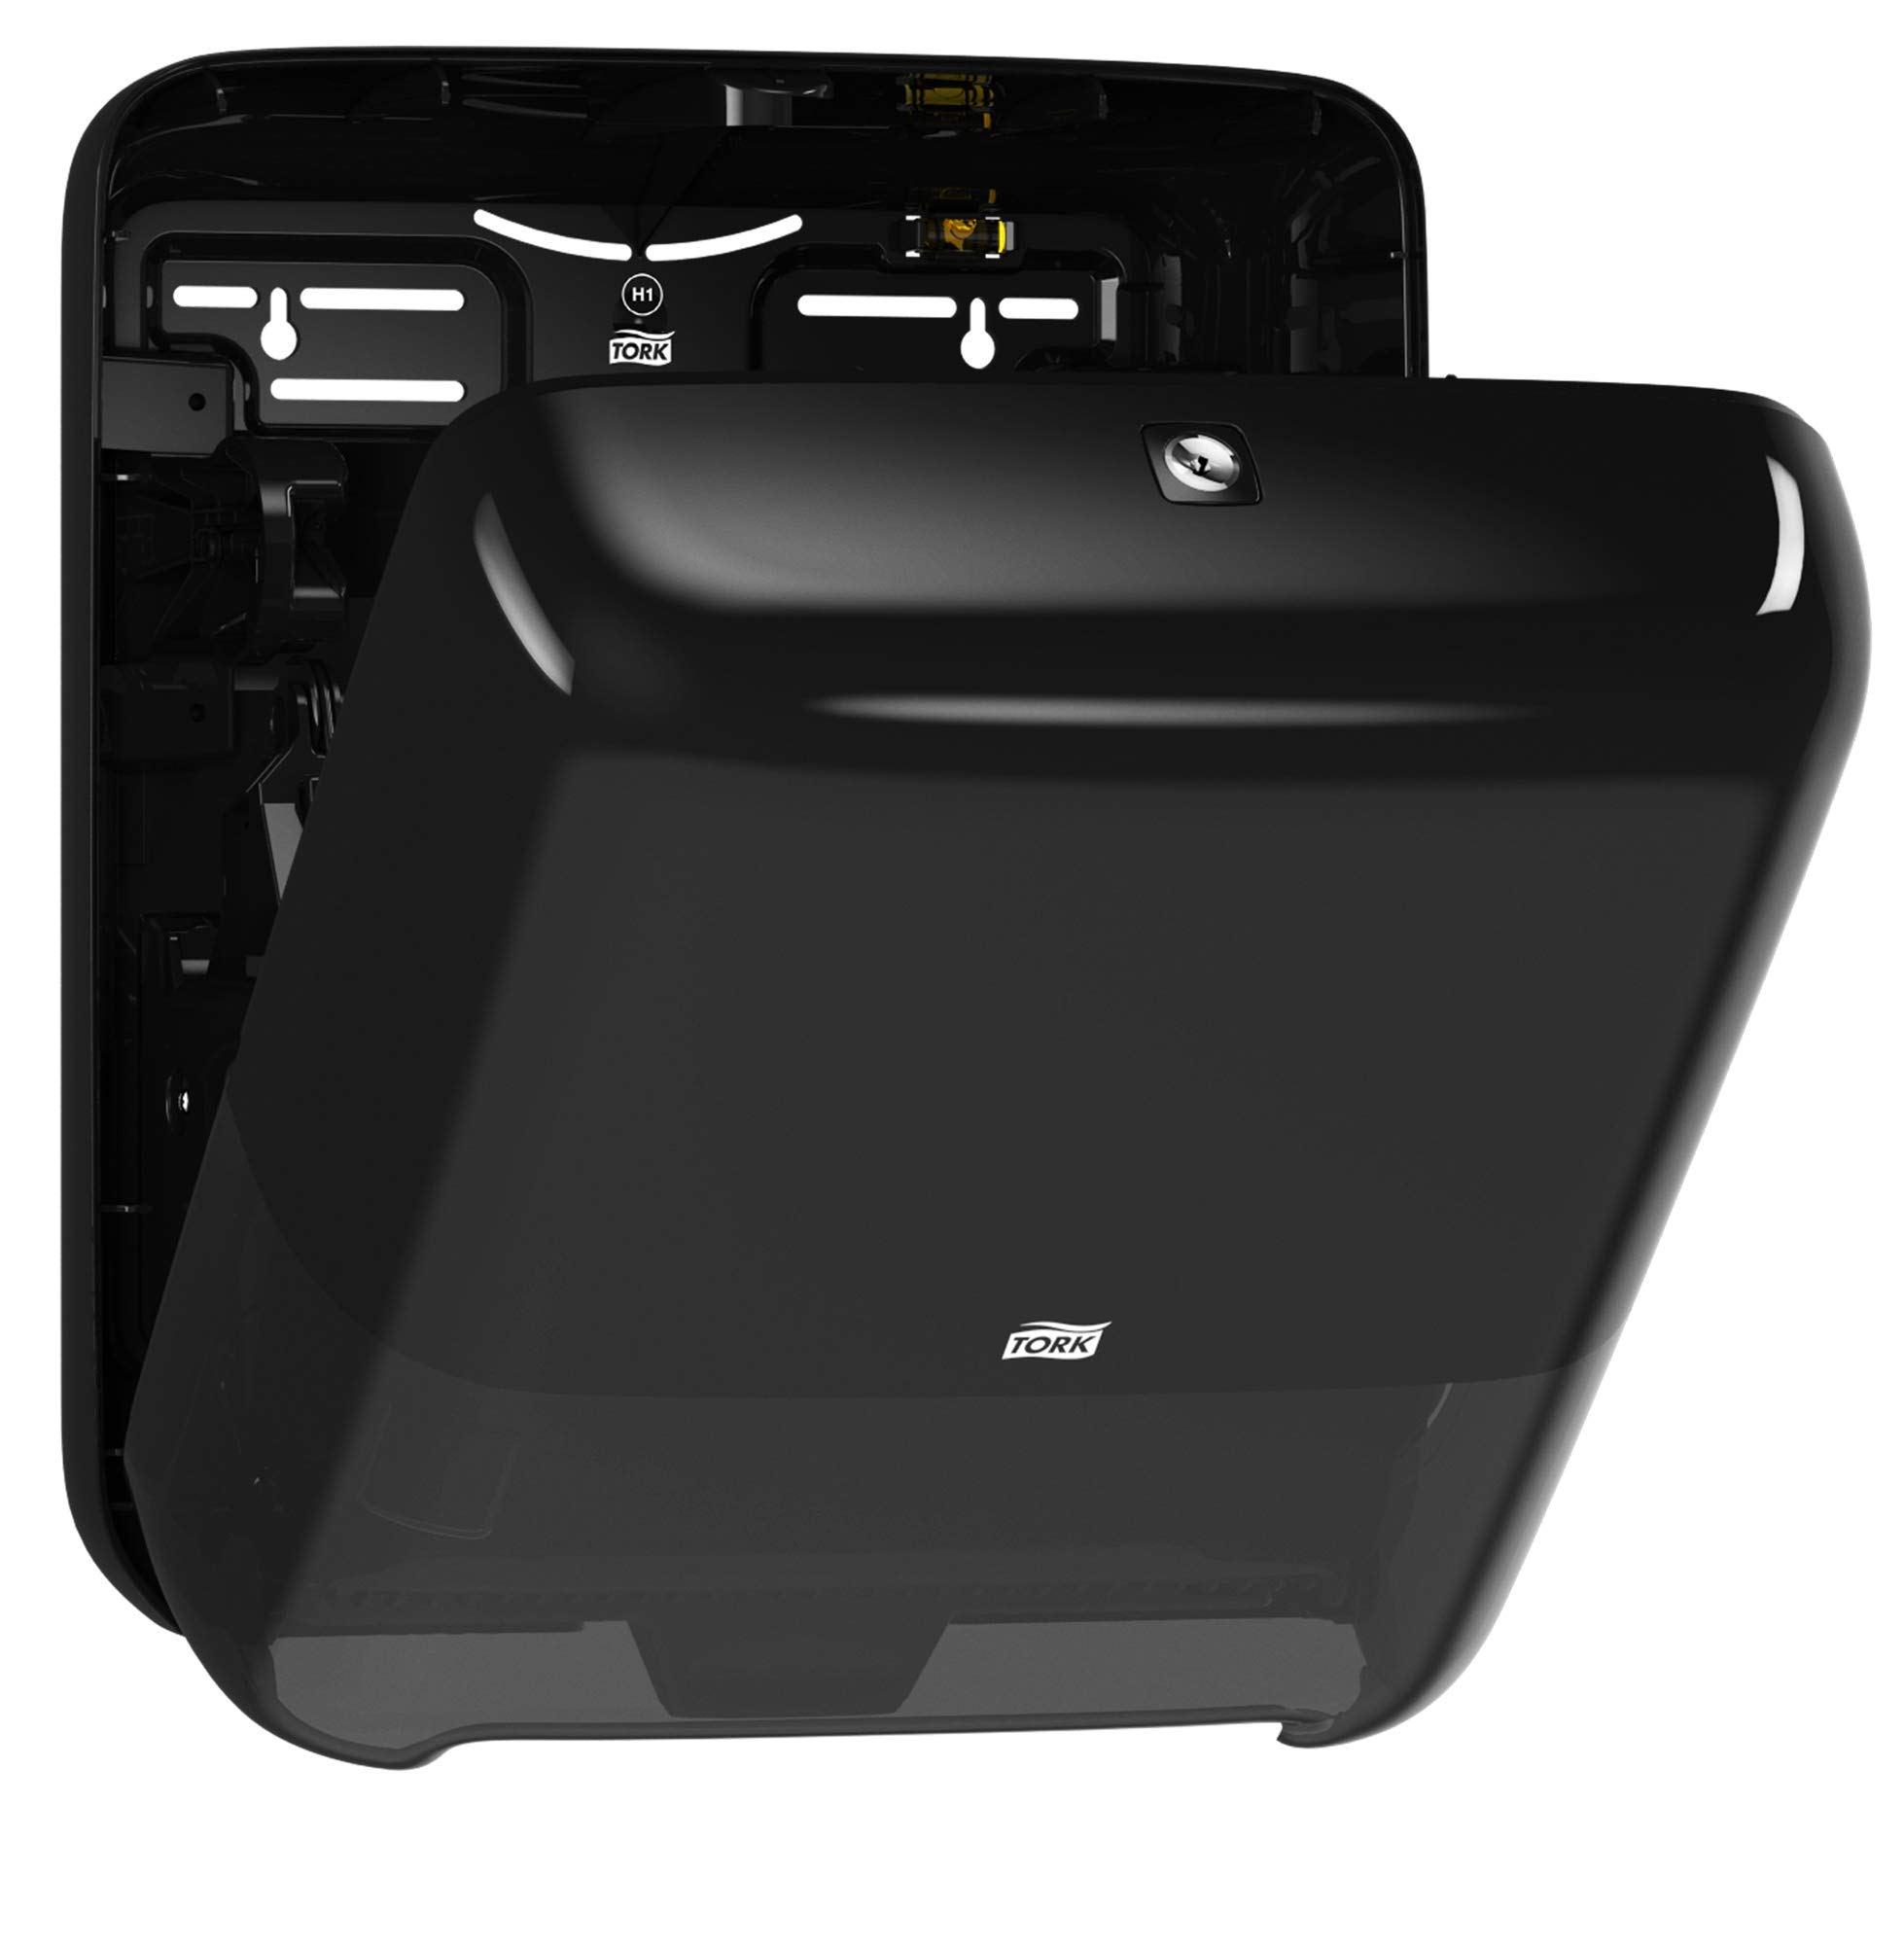 Tork 5510282 Elevation Matic Paper Hand Towel Roll Dispenser, 14.65'' Height x 13.2'' Width x 8.1'' Depth, Black (Case of 1 Dispenser) by Tork (Image #8)